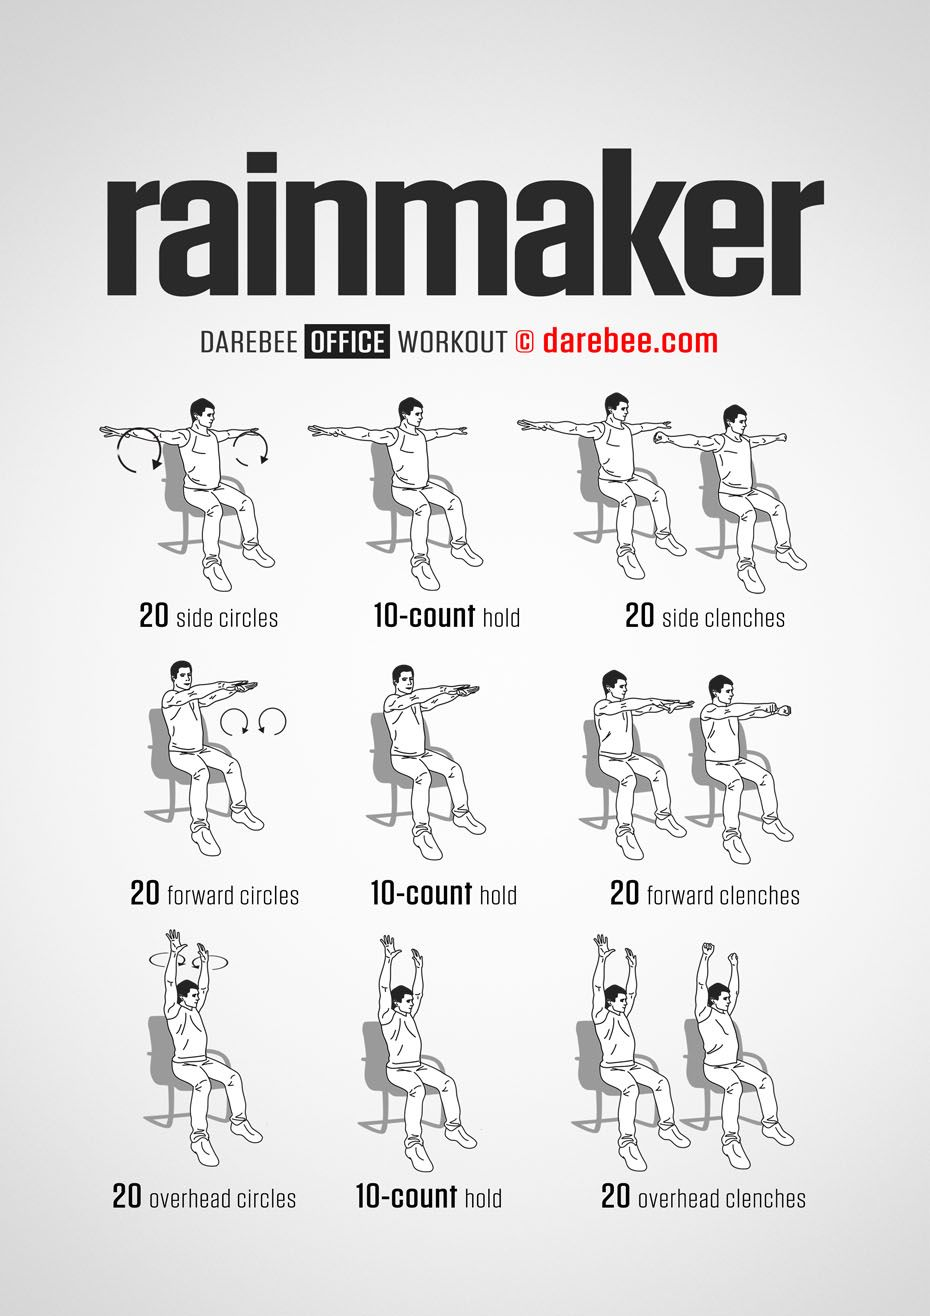 Rainmaker Workout  Workouts  Office exercise Chair